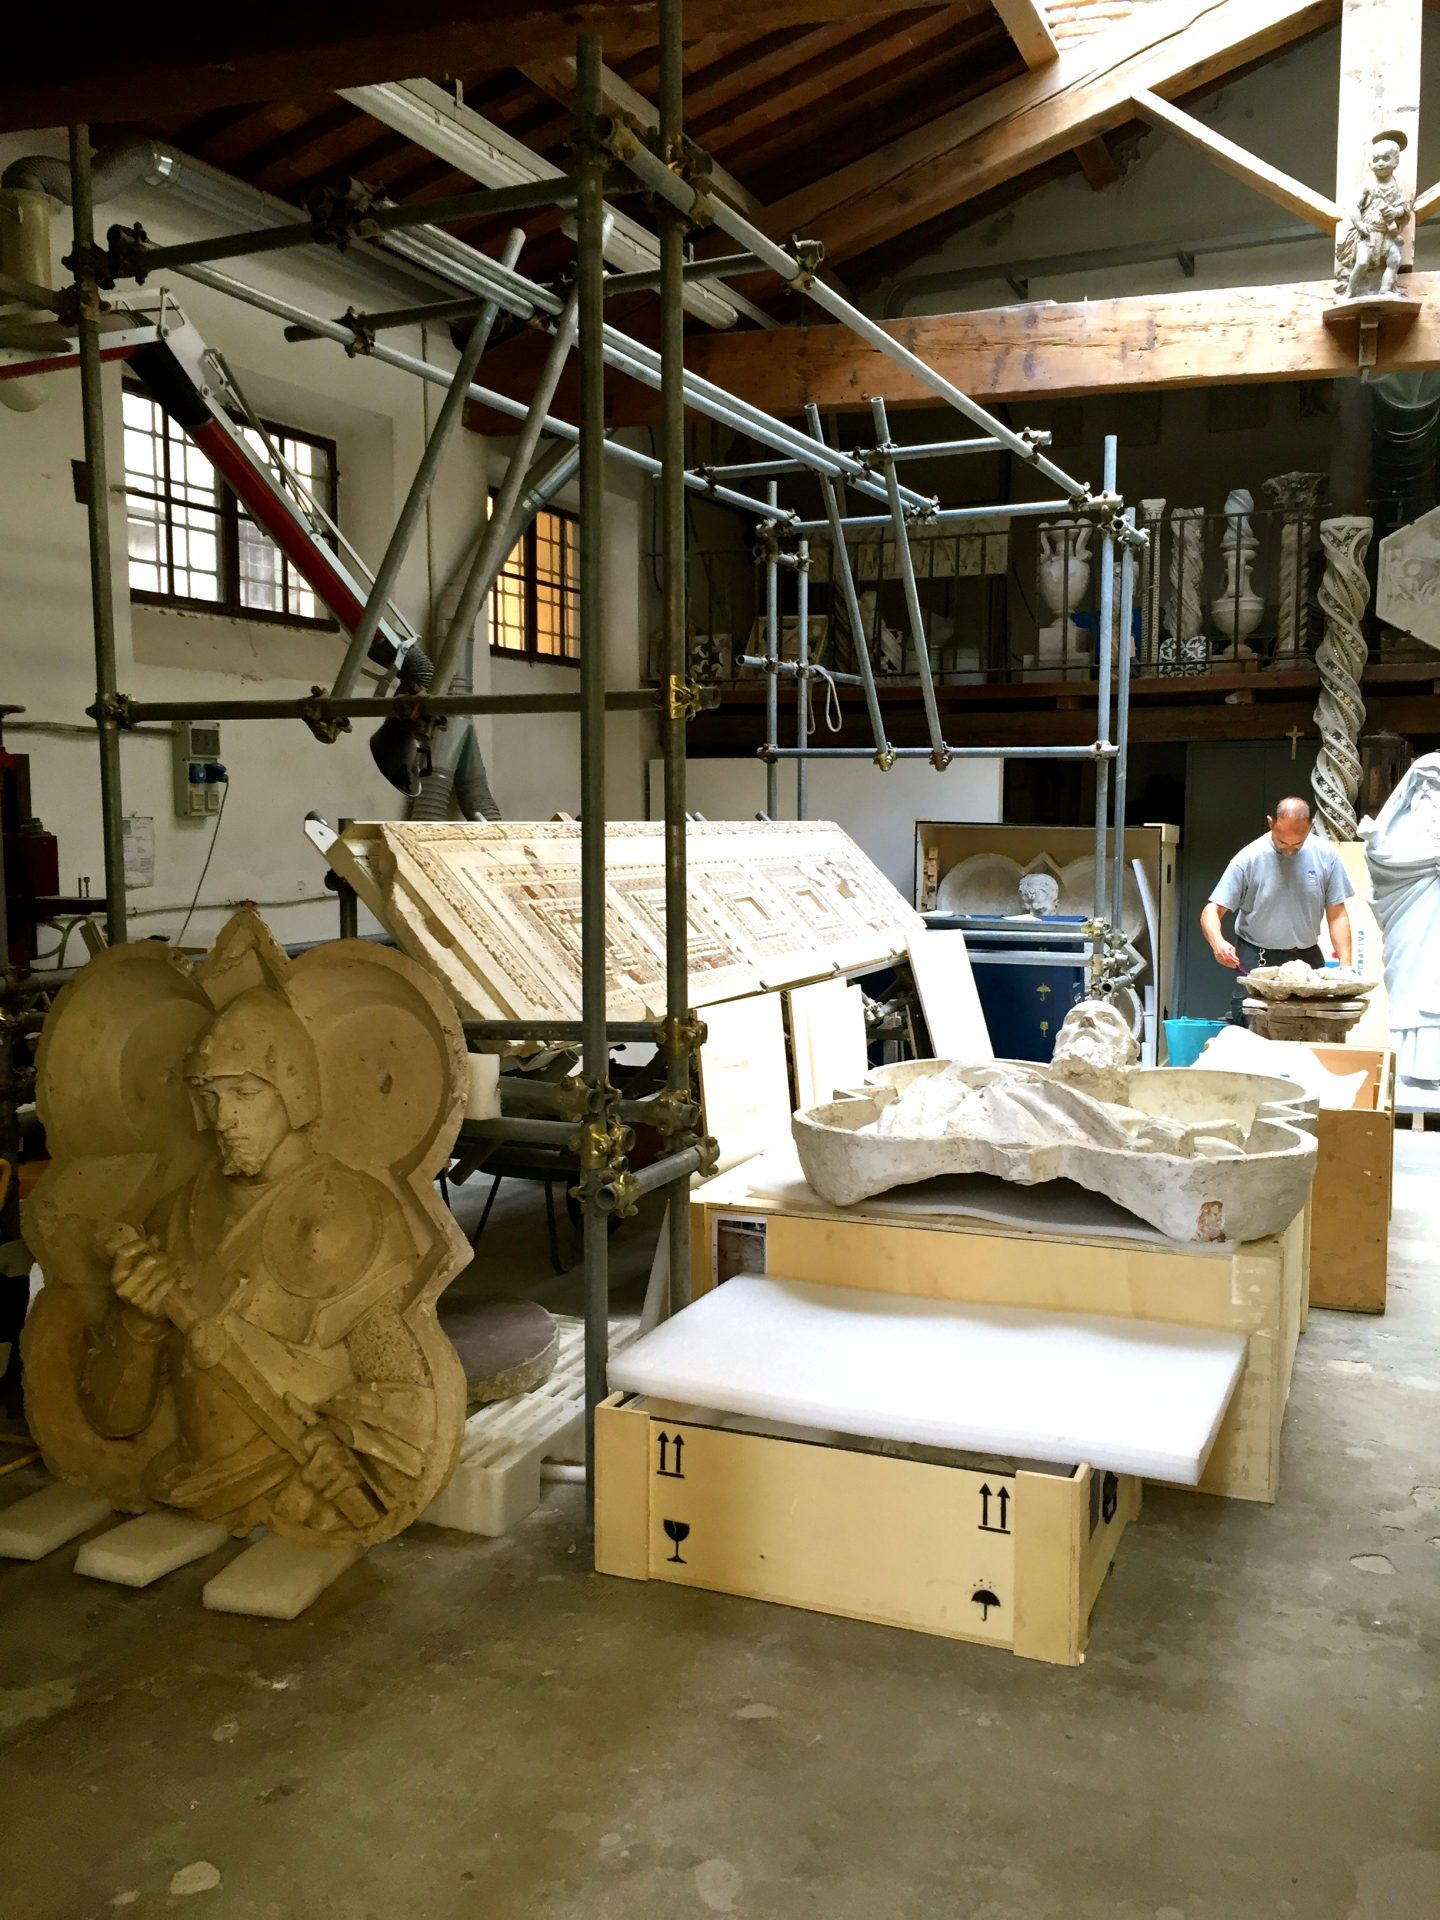 A peek at the workshop of the duomo in Florence